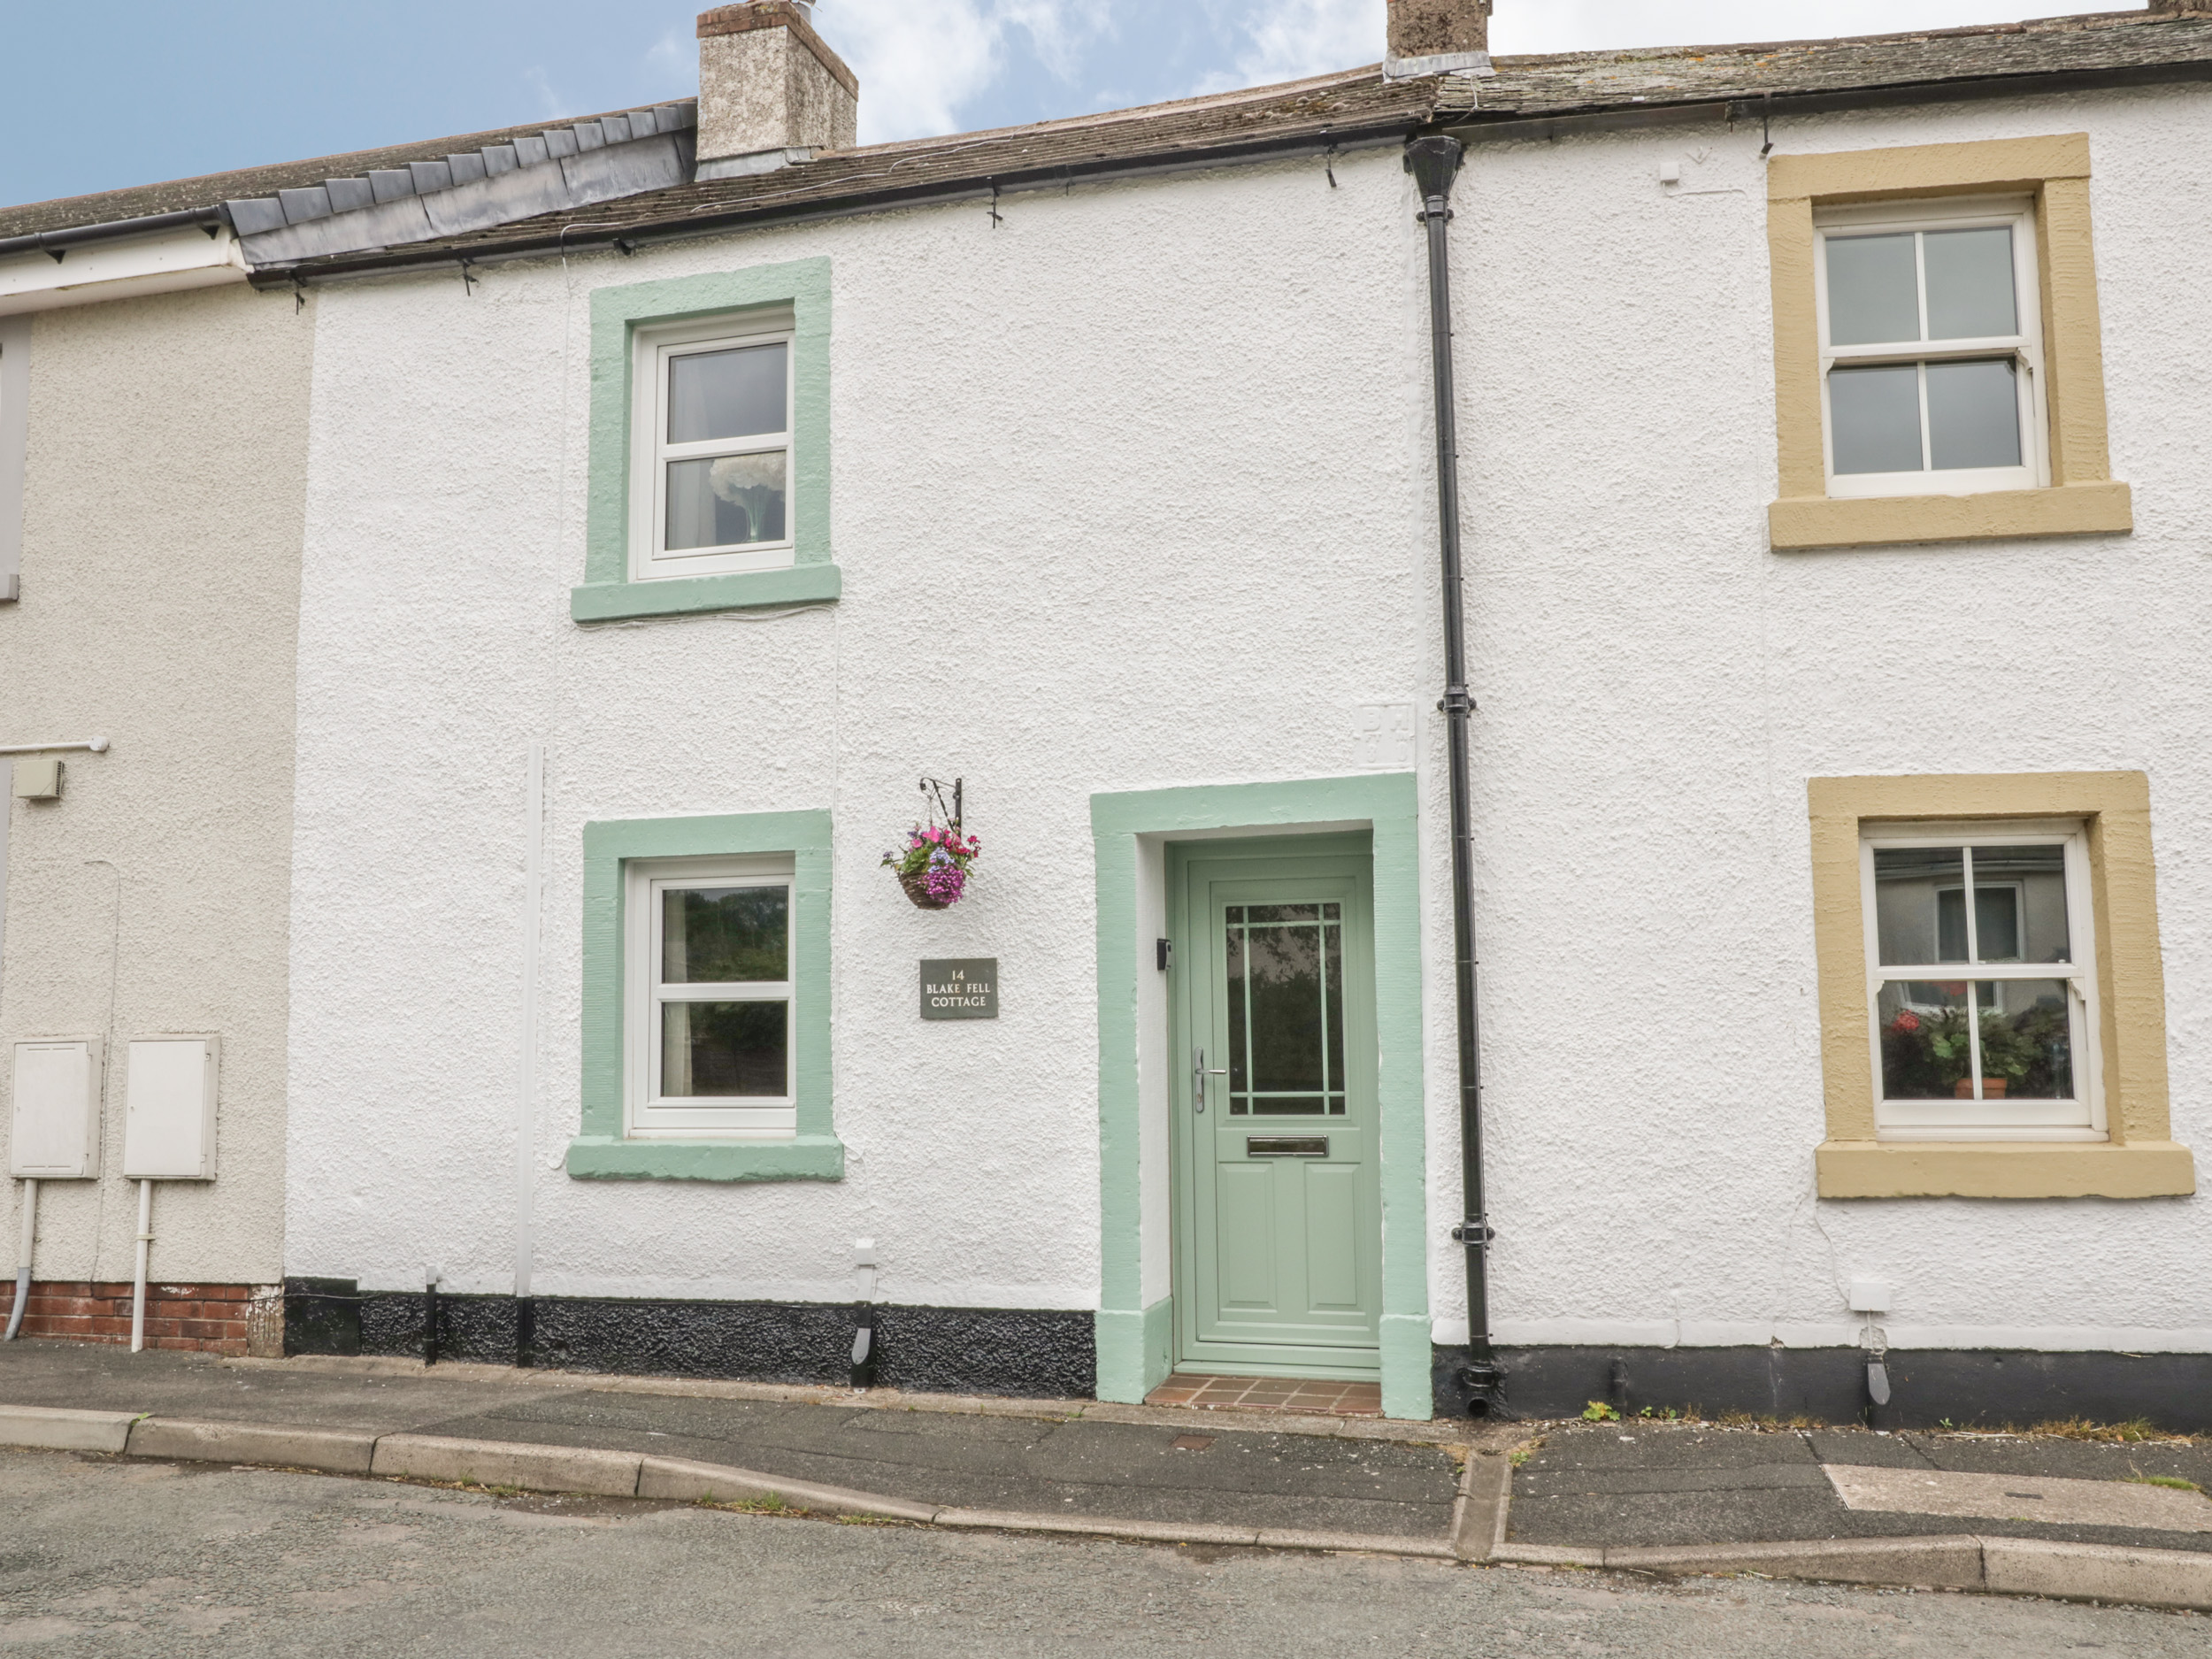 2 bedroom Cottage for rent in Lake District National Park